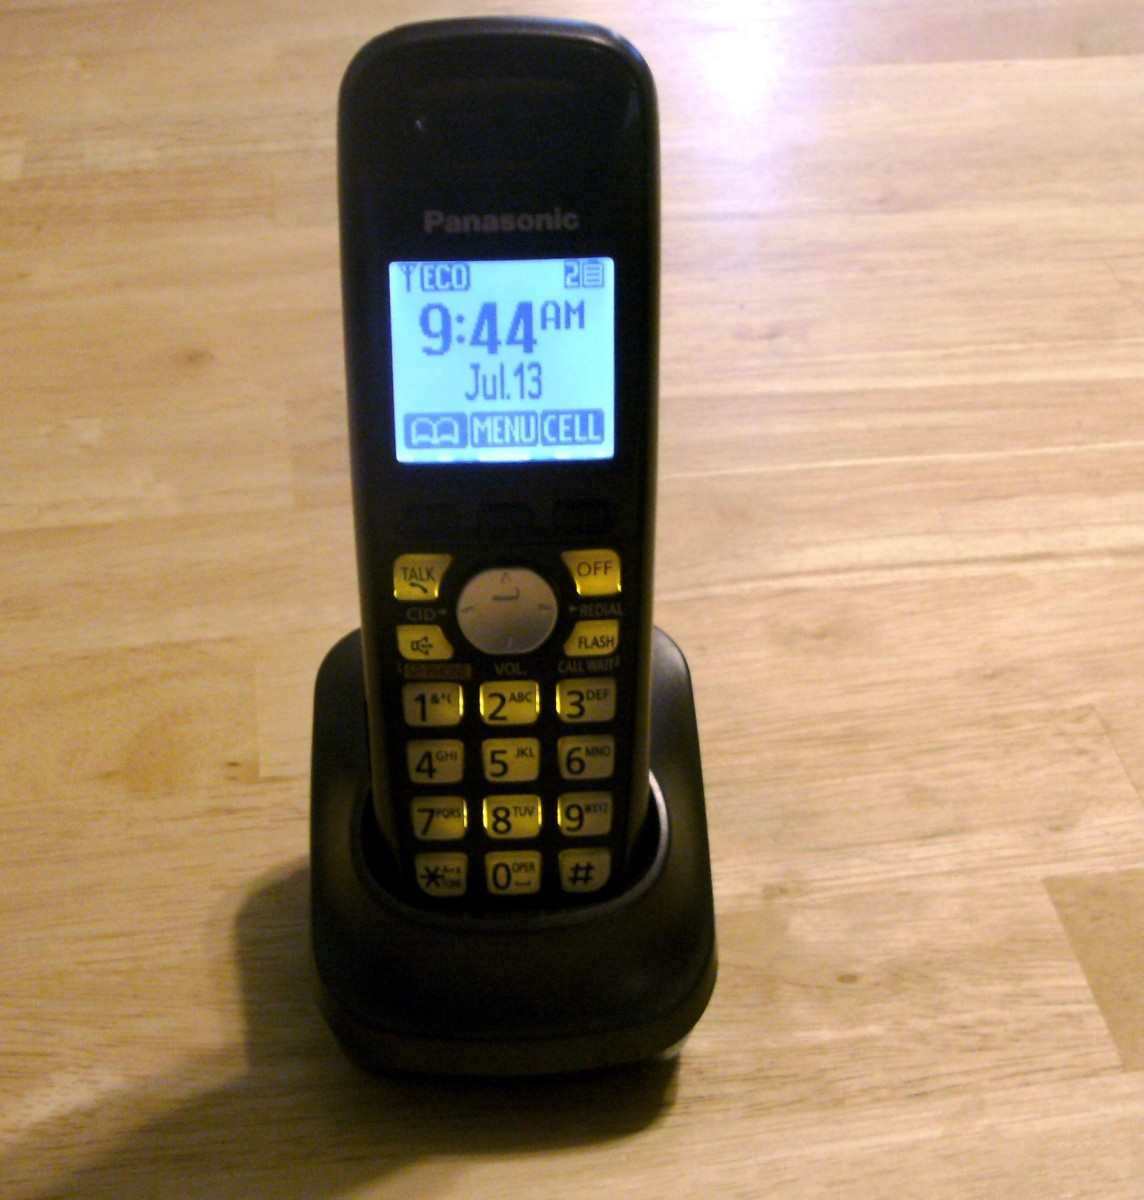 Handset and charging unit.